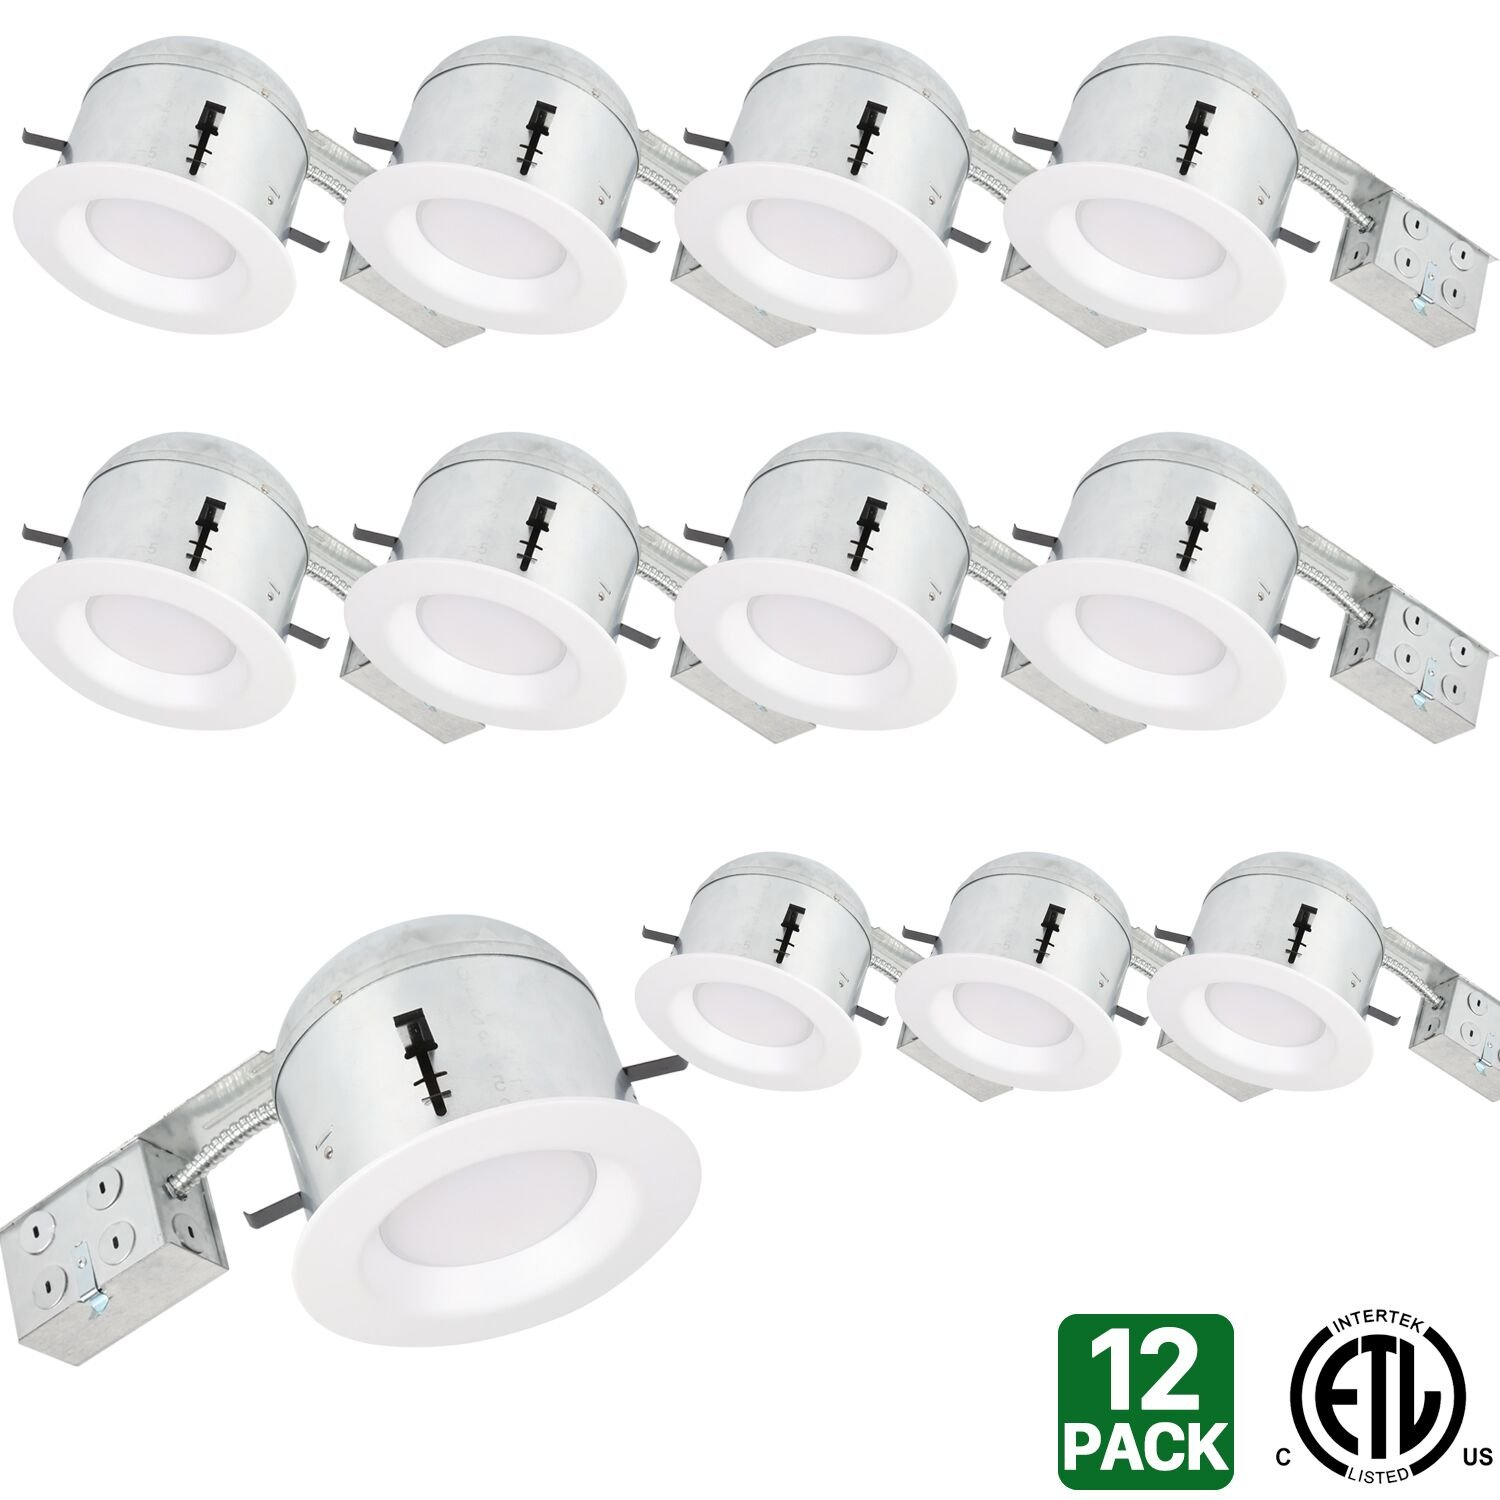 Hykolity 6'' White LED Remodel Recessed Lighting Kits, IC Rated Remodel Housing and Dimmable LED Downlight Wet Rated 15W 1100lm 3000K Warm White ETL Listed - Pack of 12